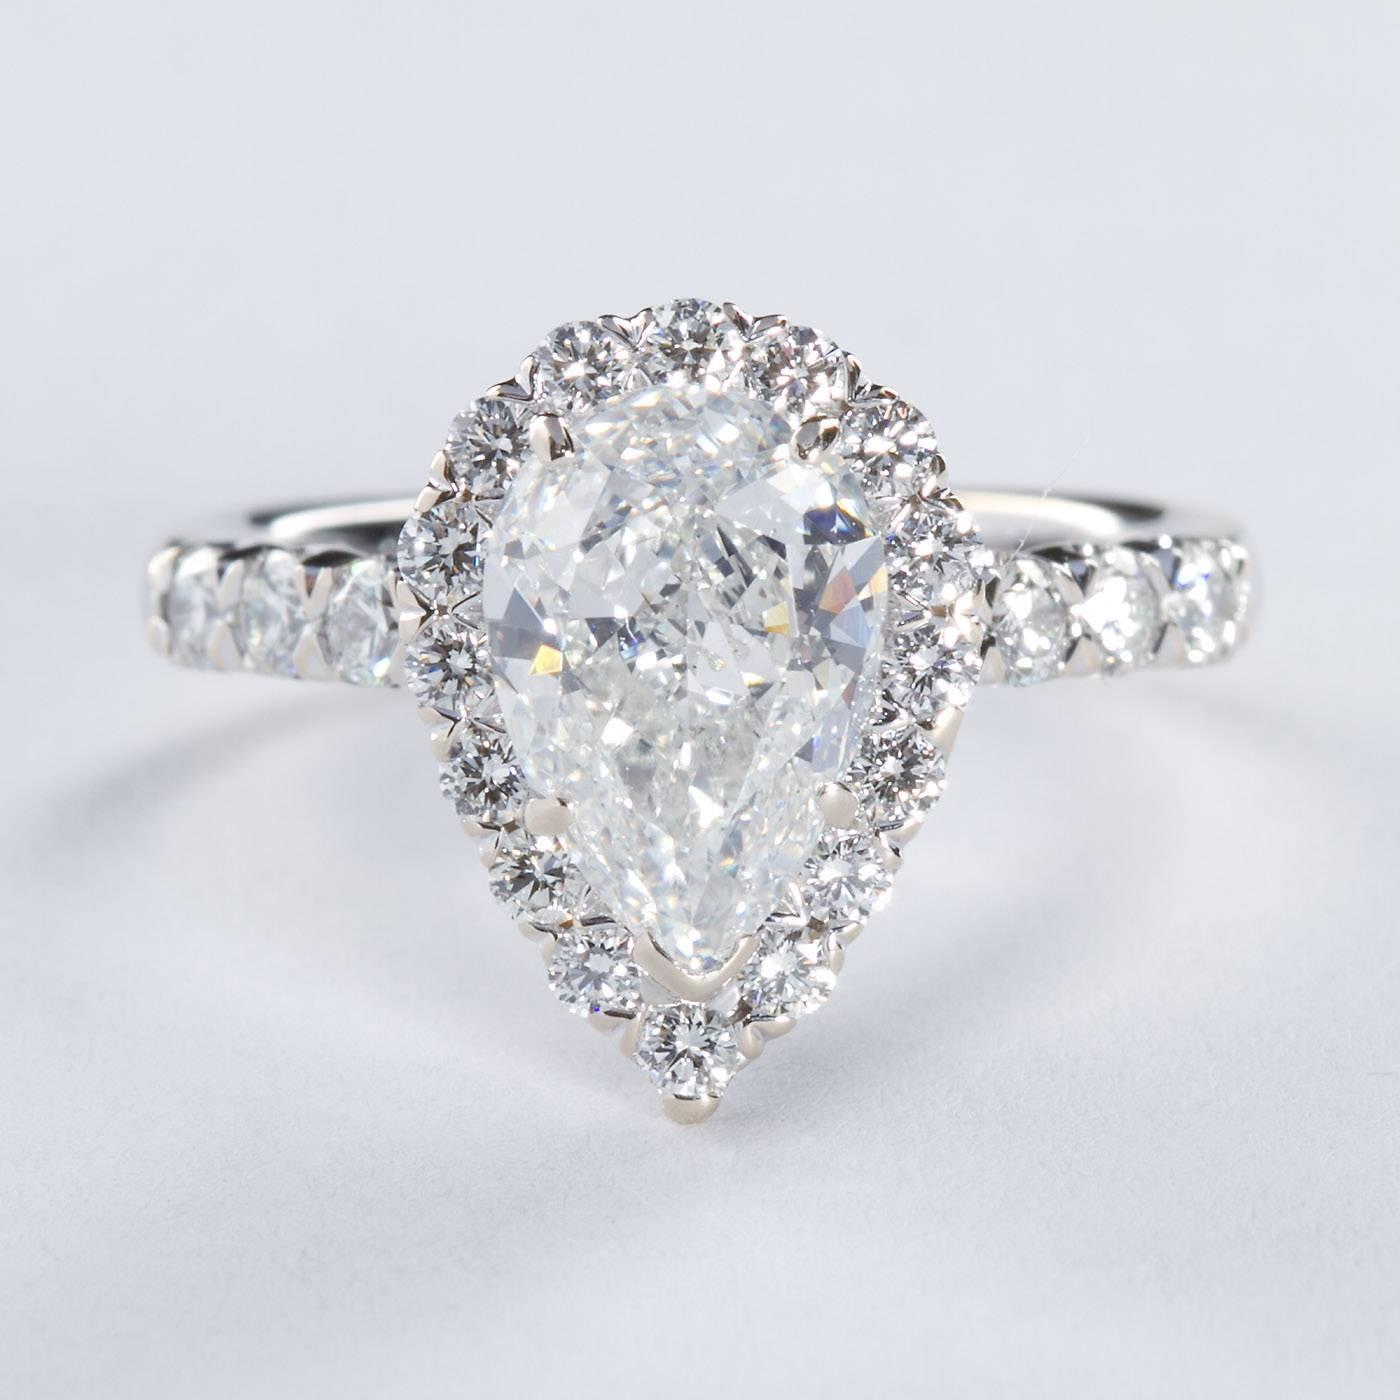 2 00 Carat GIA Cert Pear Shaped Diamond gold Halo Engagement Ring For Sale at